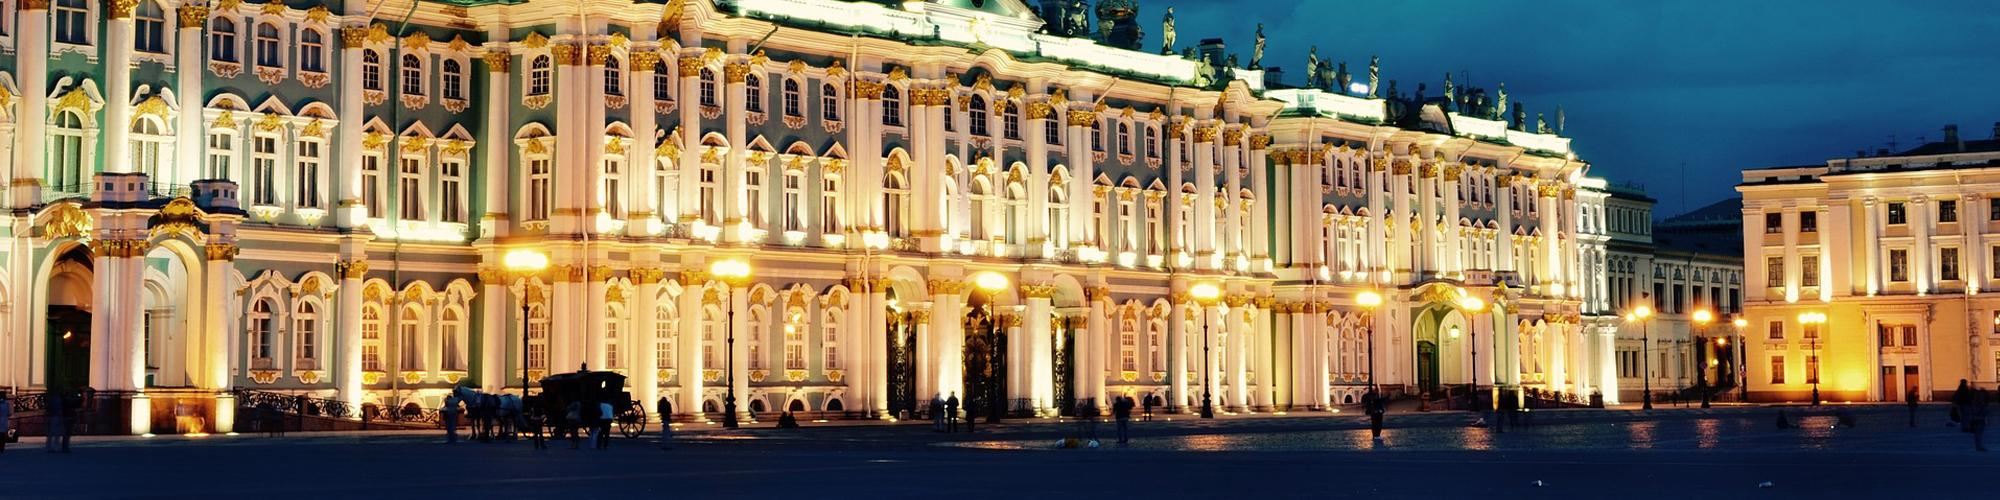 Russian Hermitage